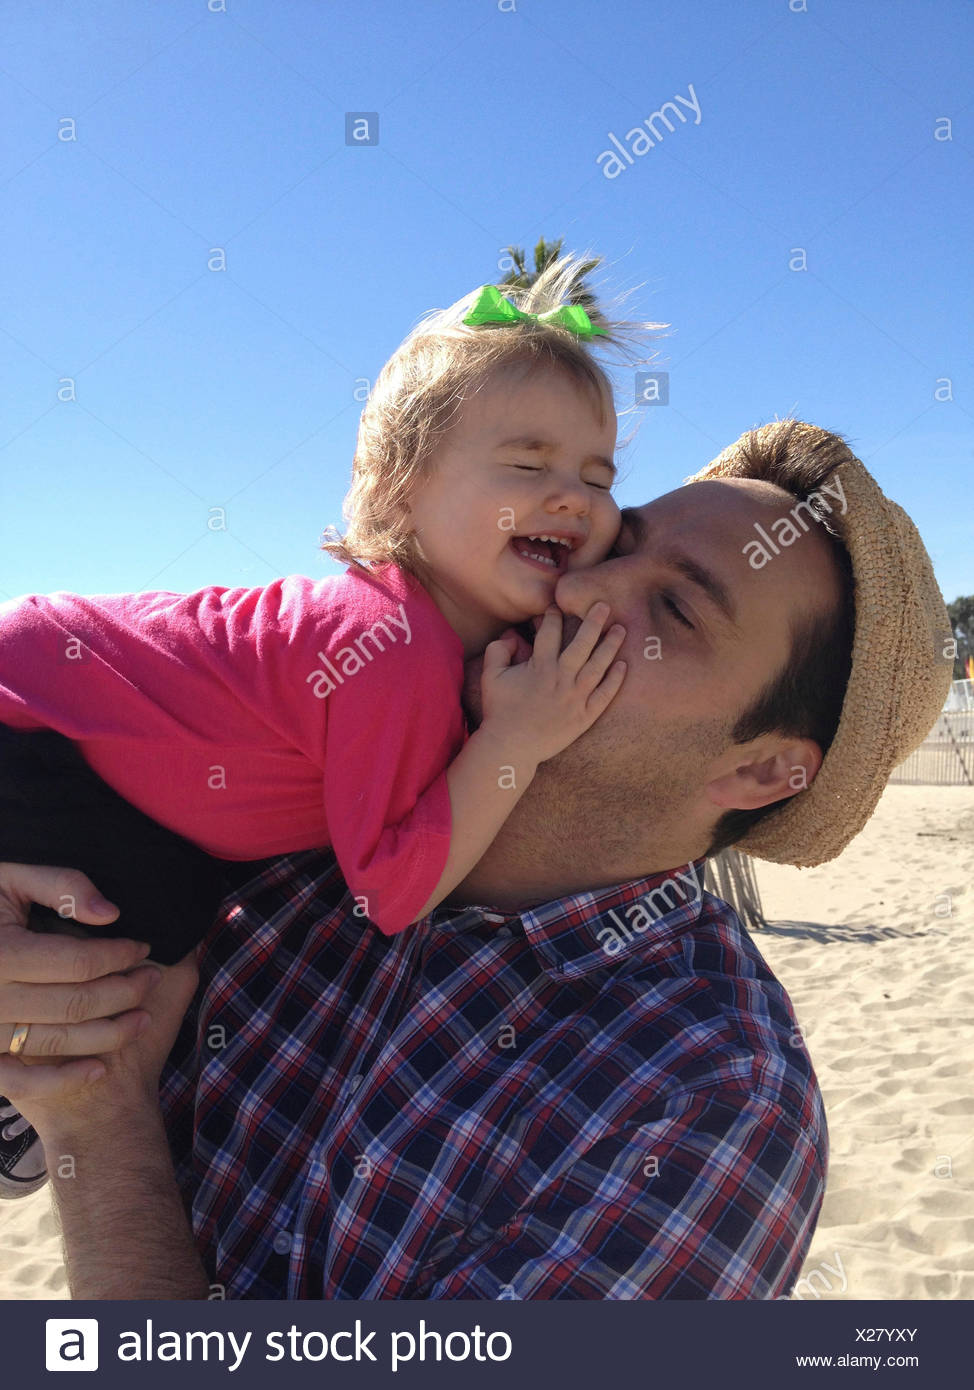 Father and daughter (18-23 months) having fun on beach - Stock Image